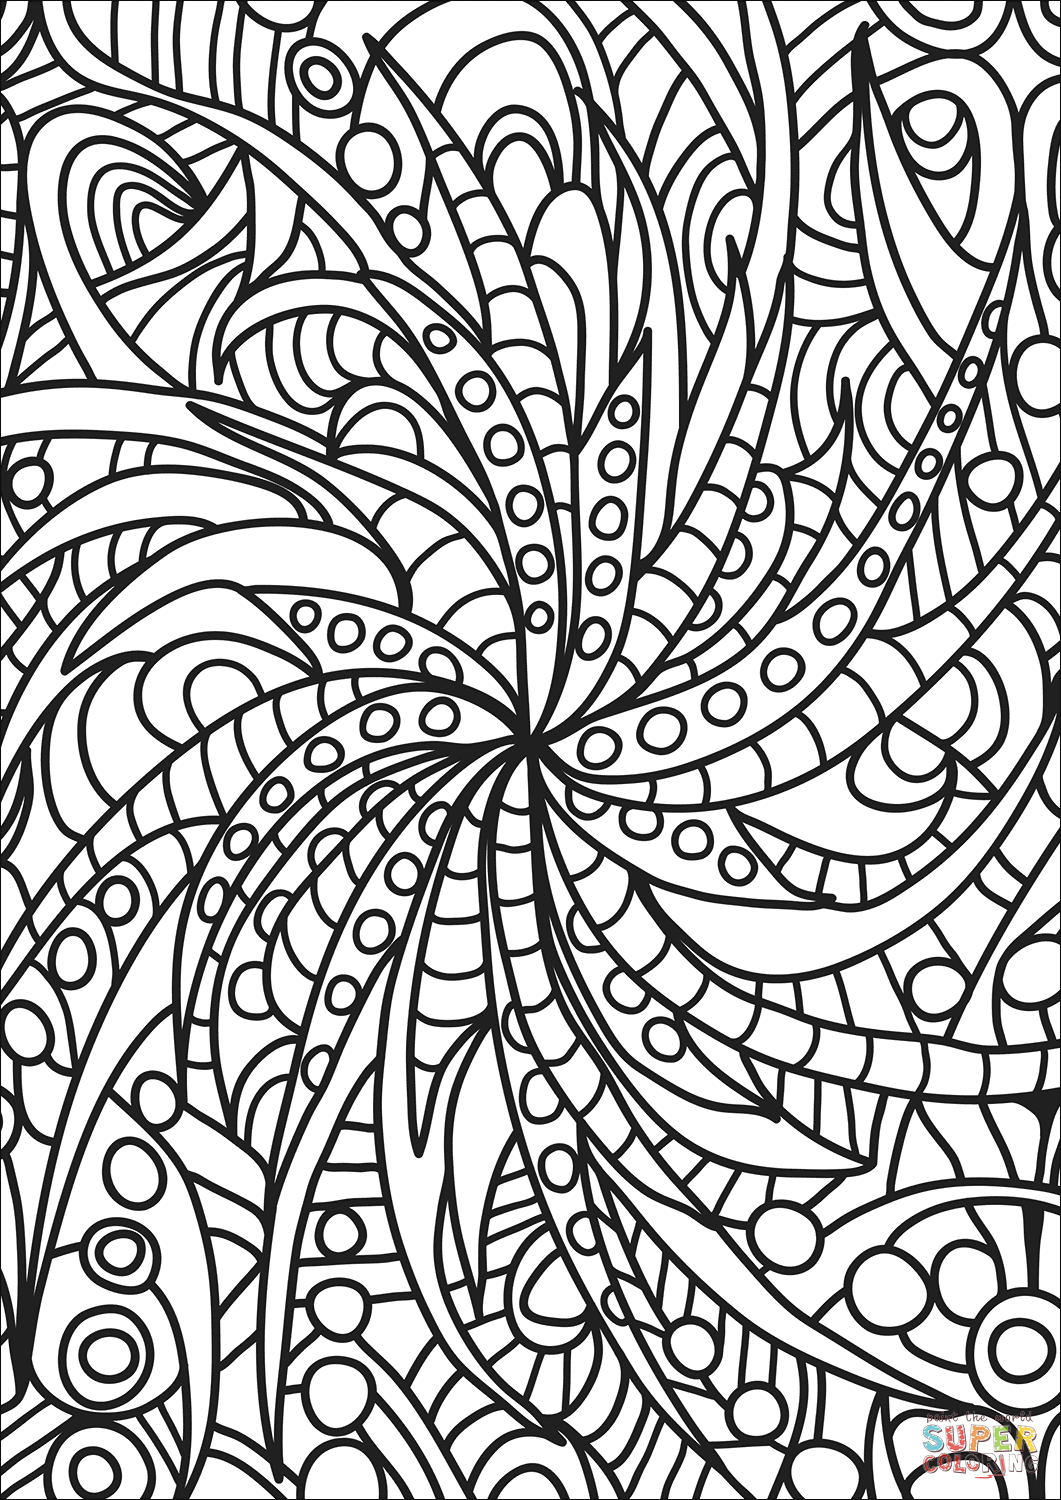 abstract coloring pages to print abstract doodle coloring page free printable coloring pages pages coloring to print abstract